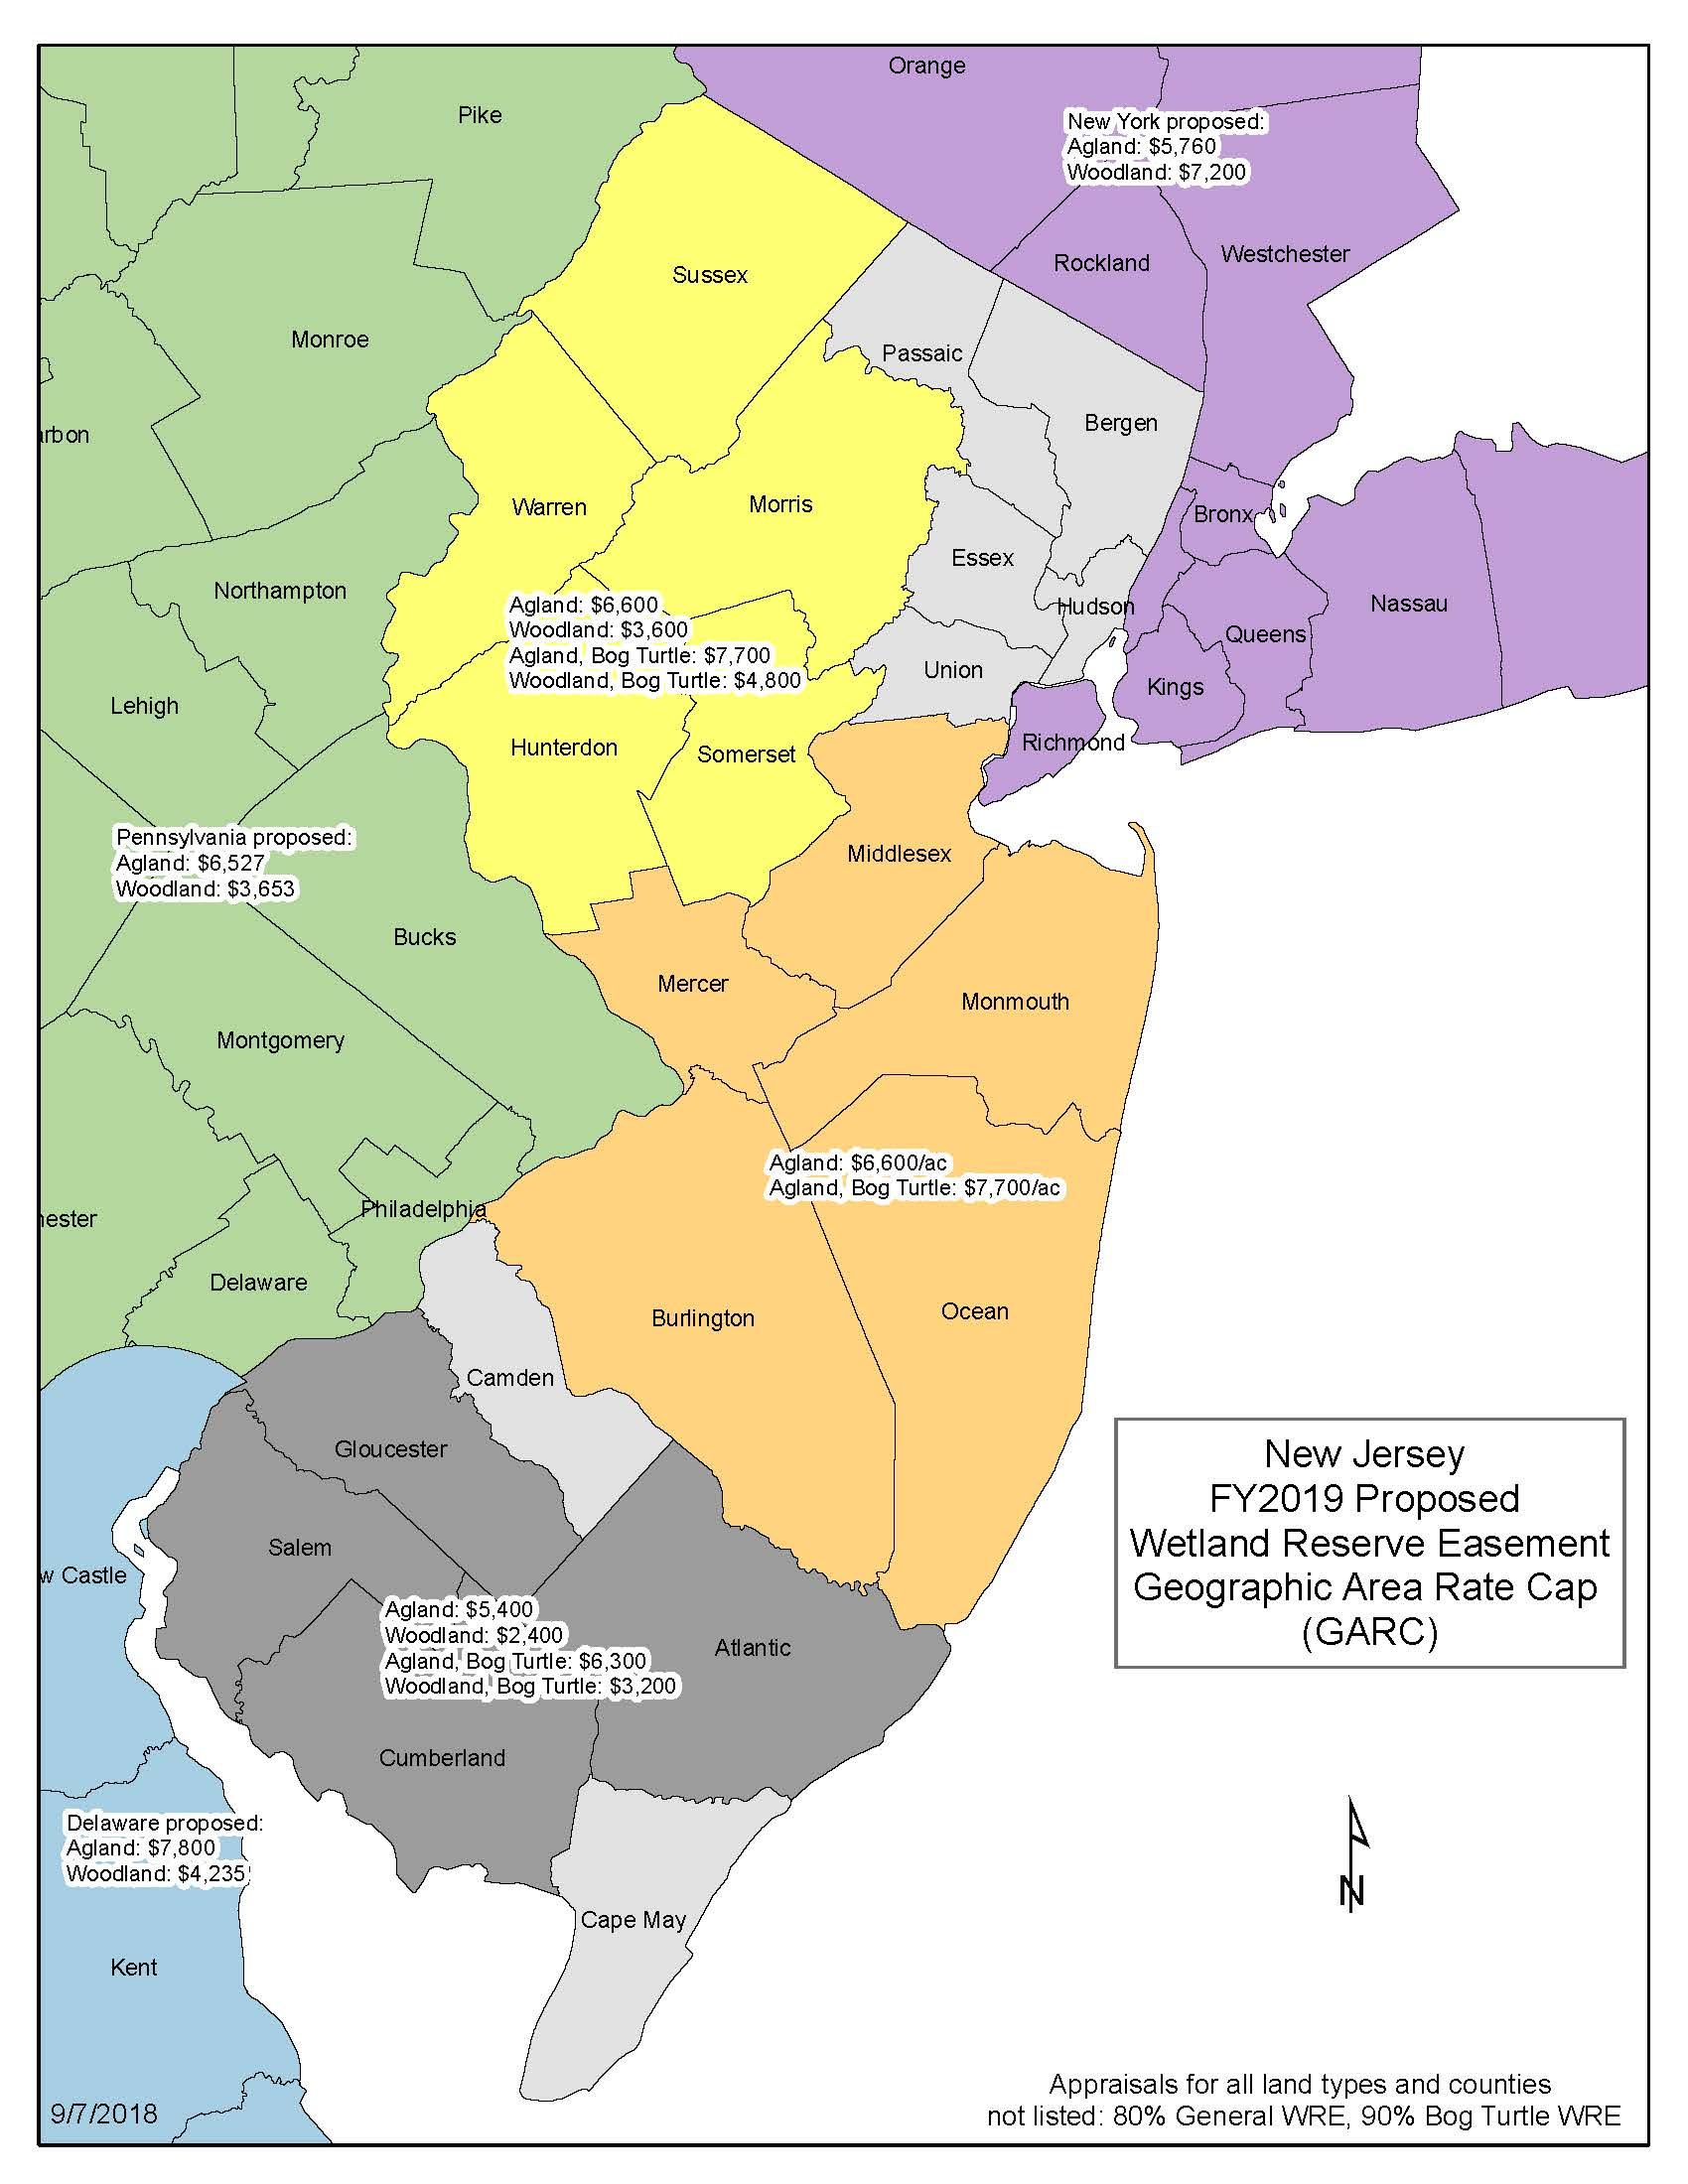 Map of the Geographic Area Rate Caps in NJ for FY 2019